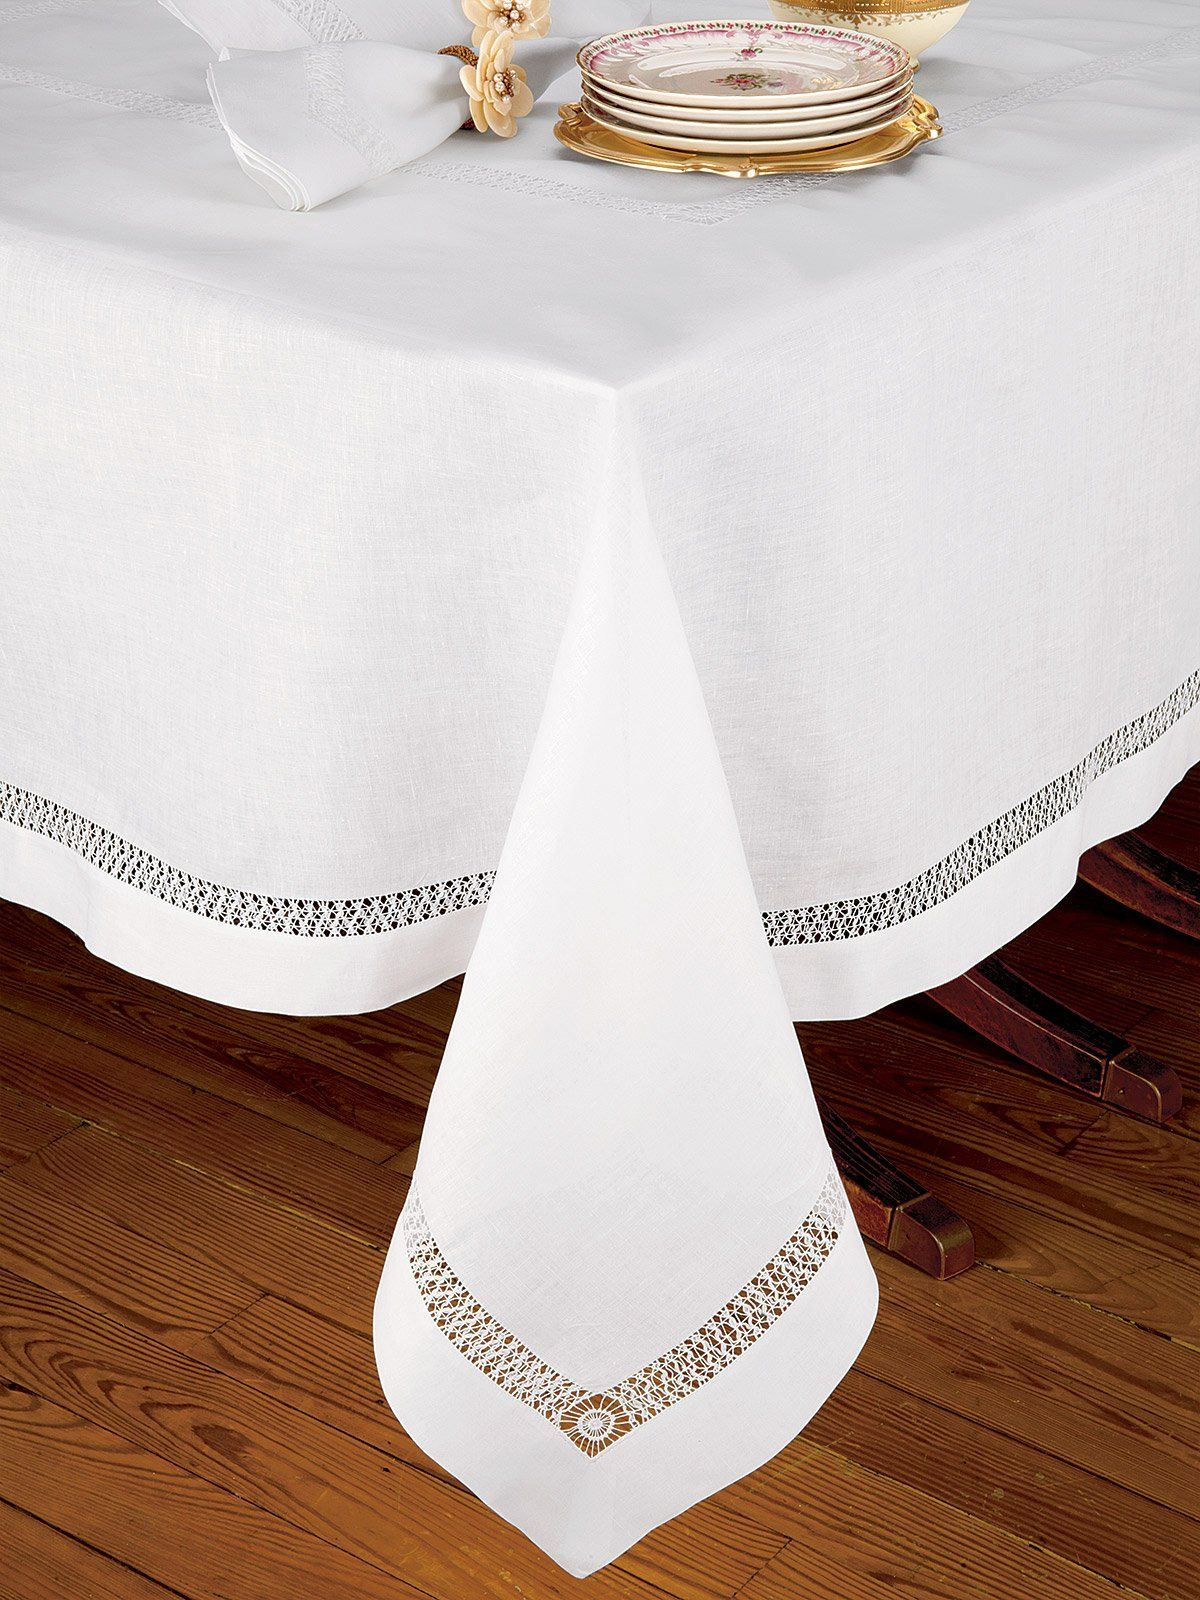 Chateau Blanc Table Cloth Fine Table Linens Schweitzer